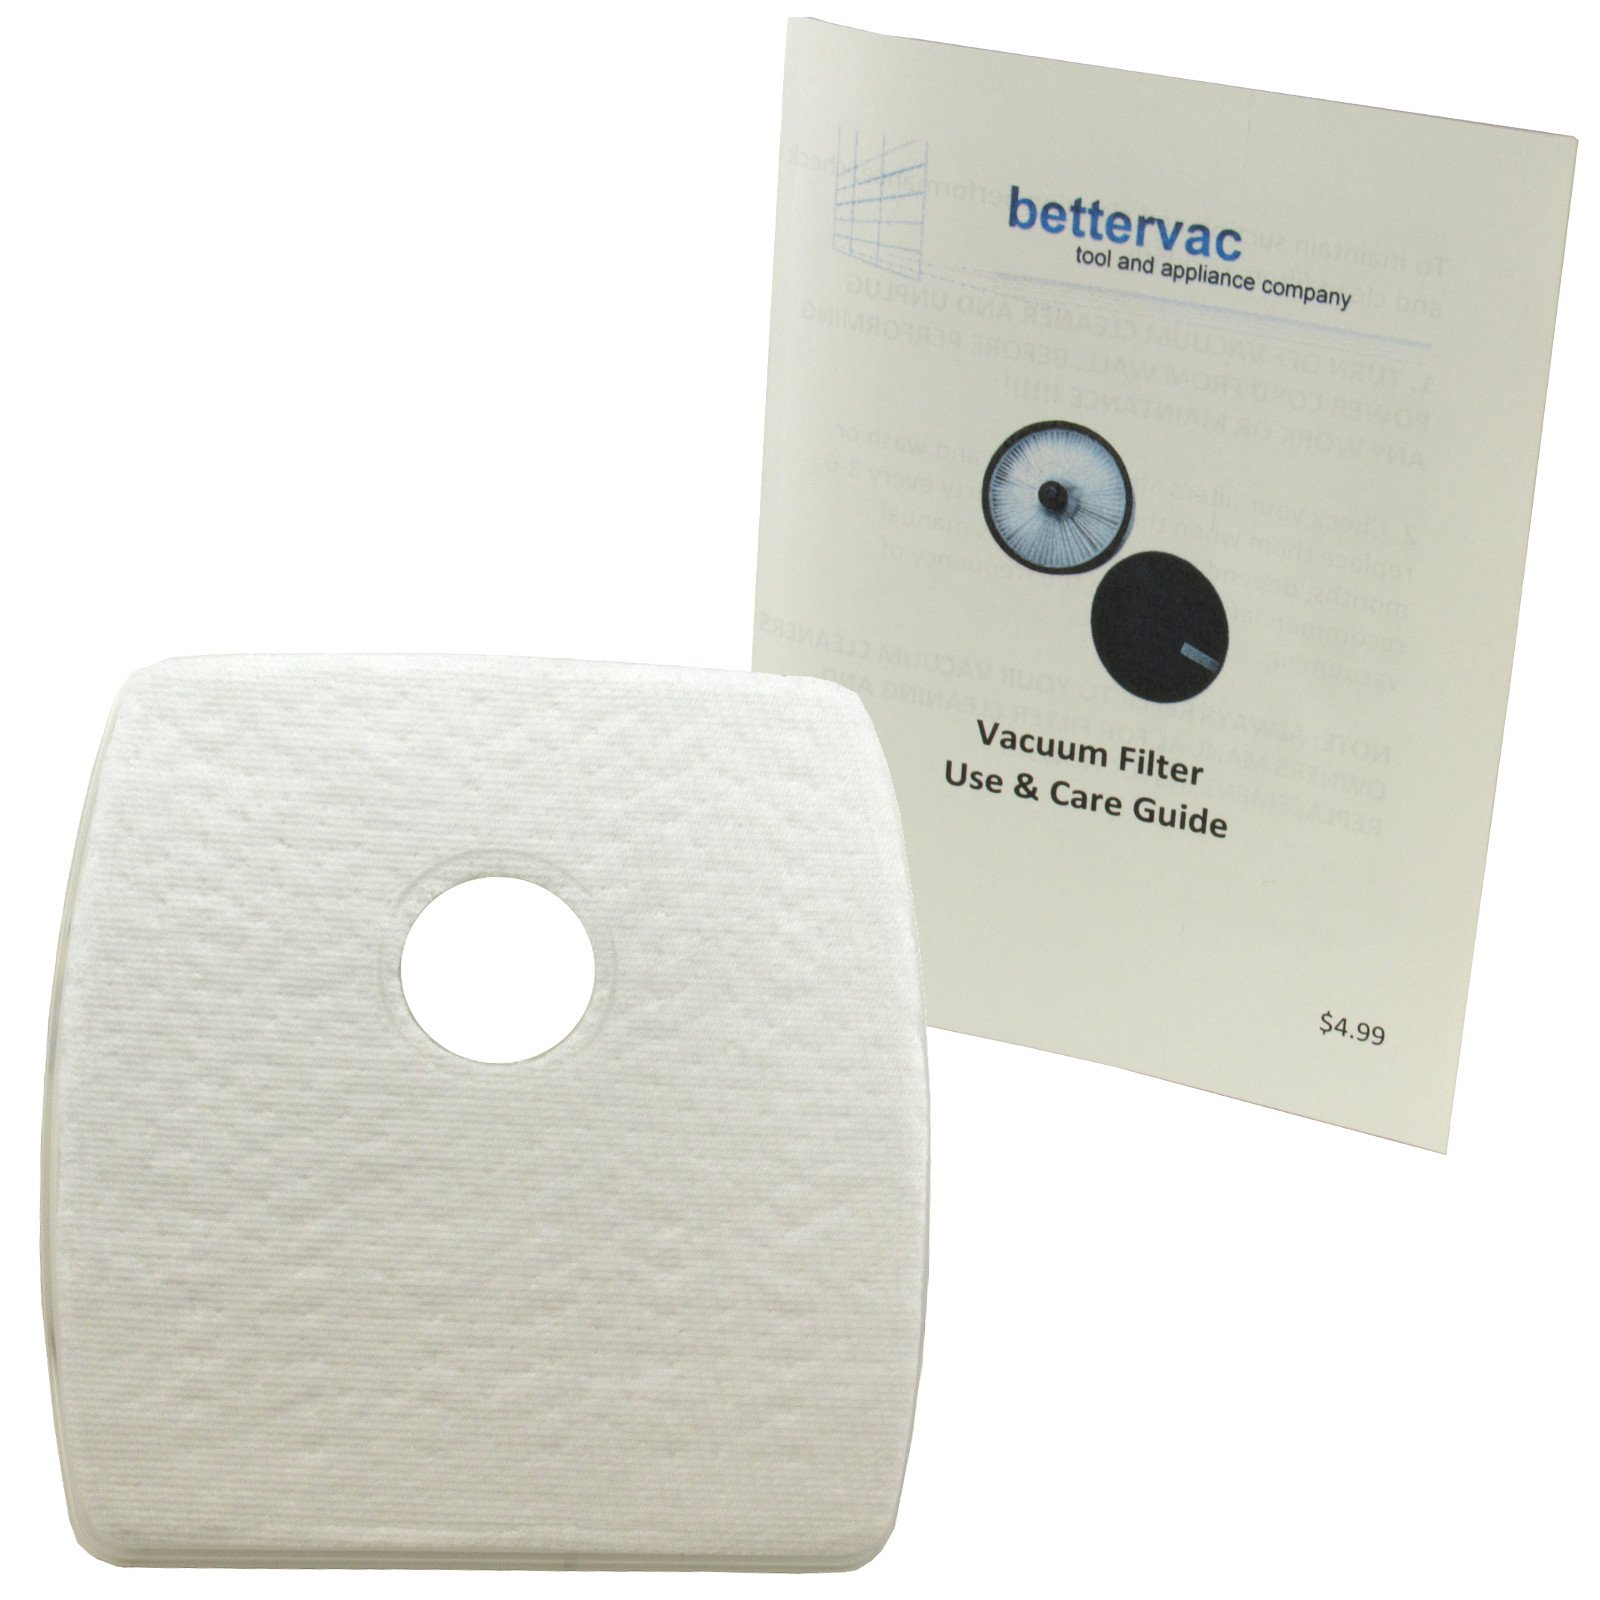 Bissell SmartClean & Digipro Robotic Dust Bin Filter #1607383 Bundled With Use And Care Guide